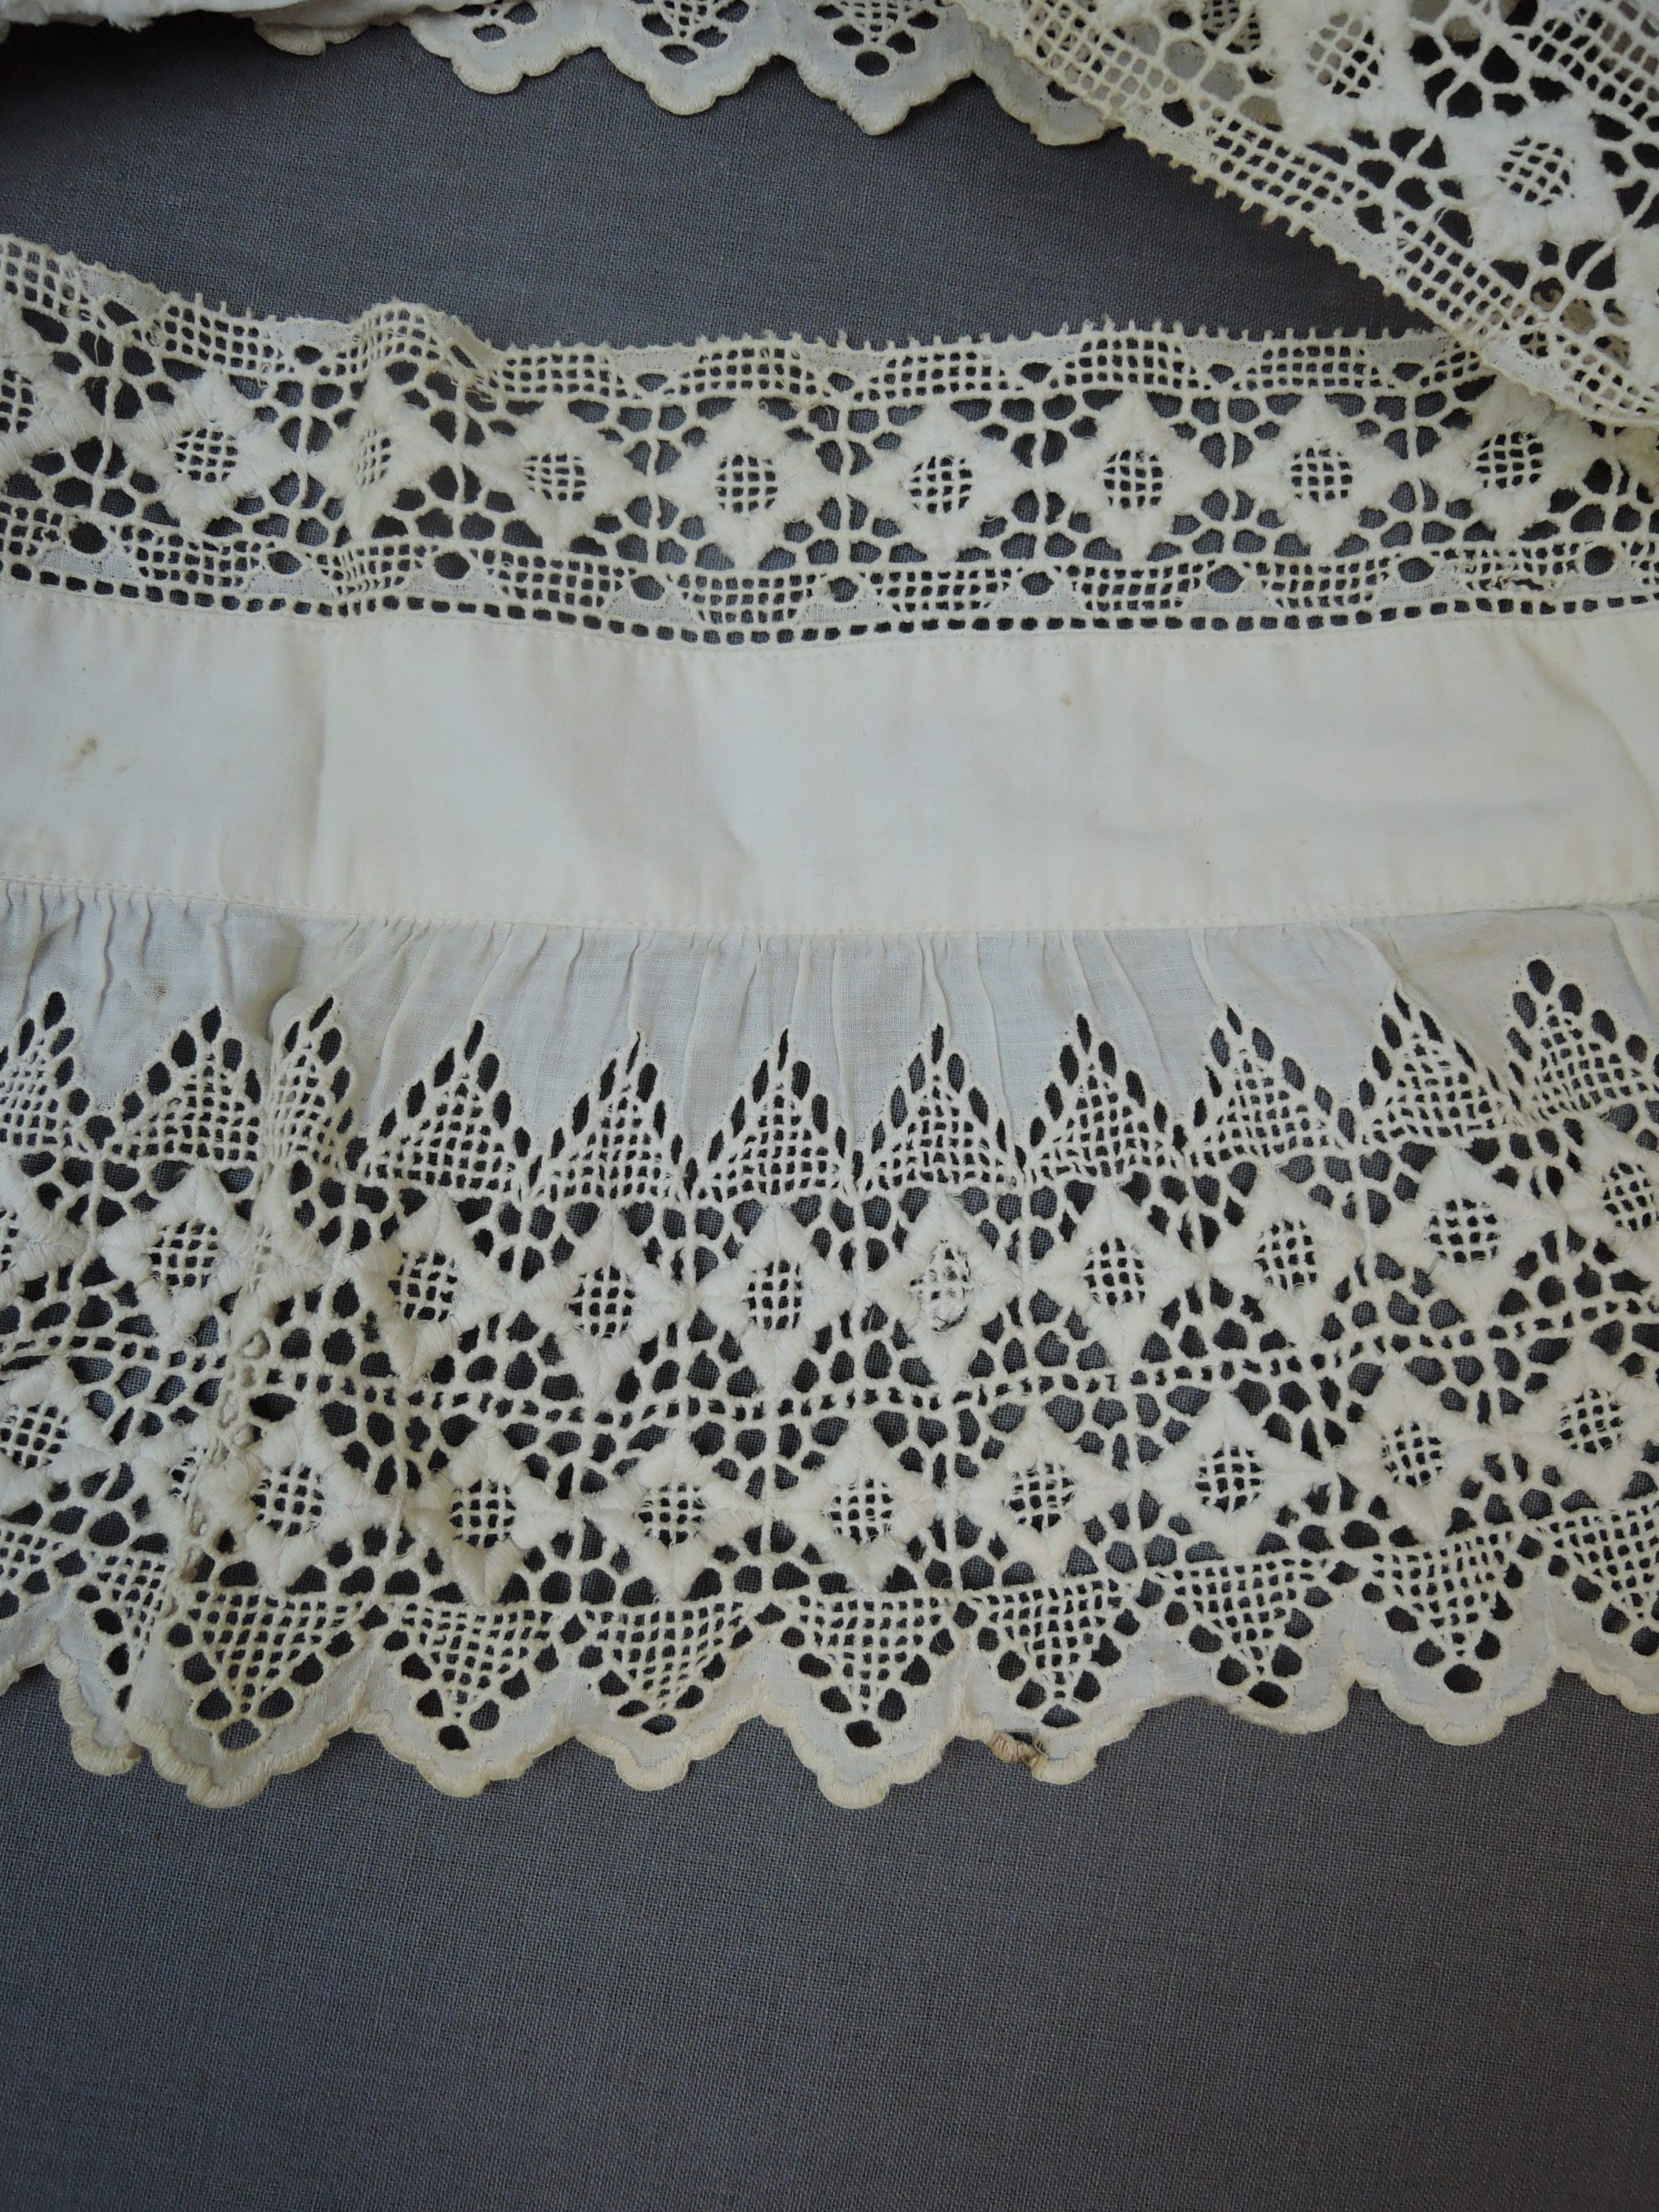 Antique Embroidered Lace Dress Trim, Victorian Drawn Work 1800s early 1900s Vintage Remnant